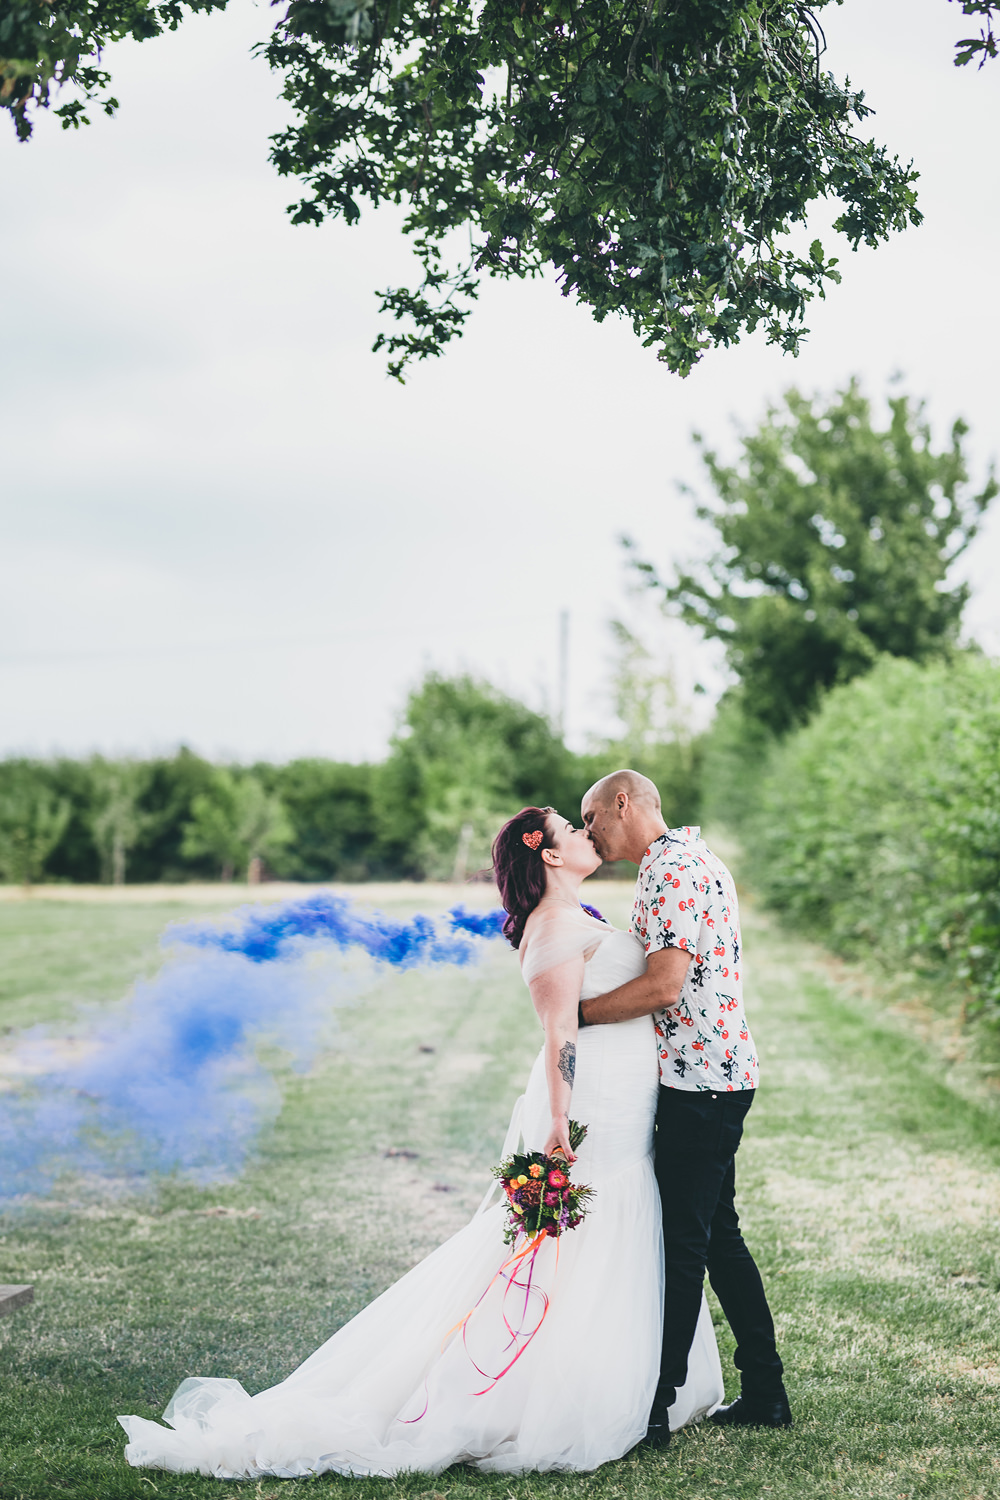 Bride Bridal Dress Gown Tulle Strapless Fit Flare Smoke Bomb Portrait Photo Photographs Rock Village Hall Wedding Lucie Hamilton Photography